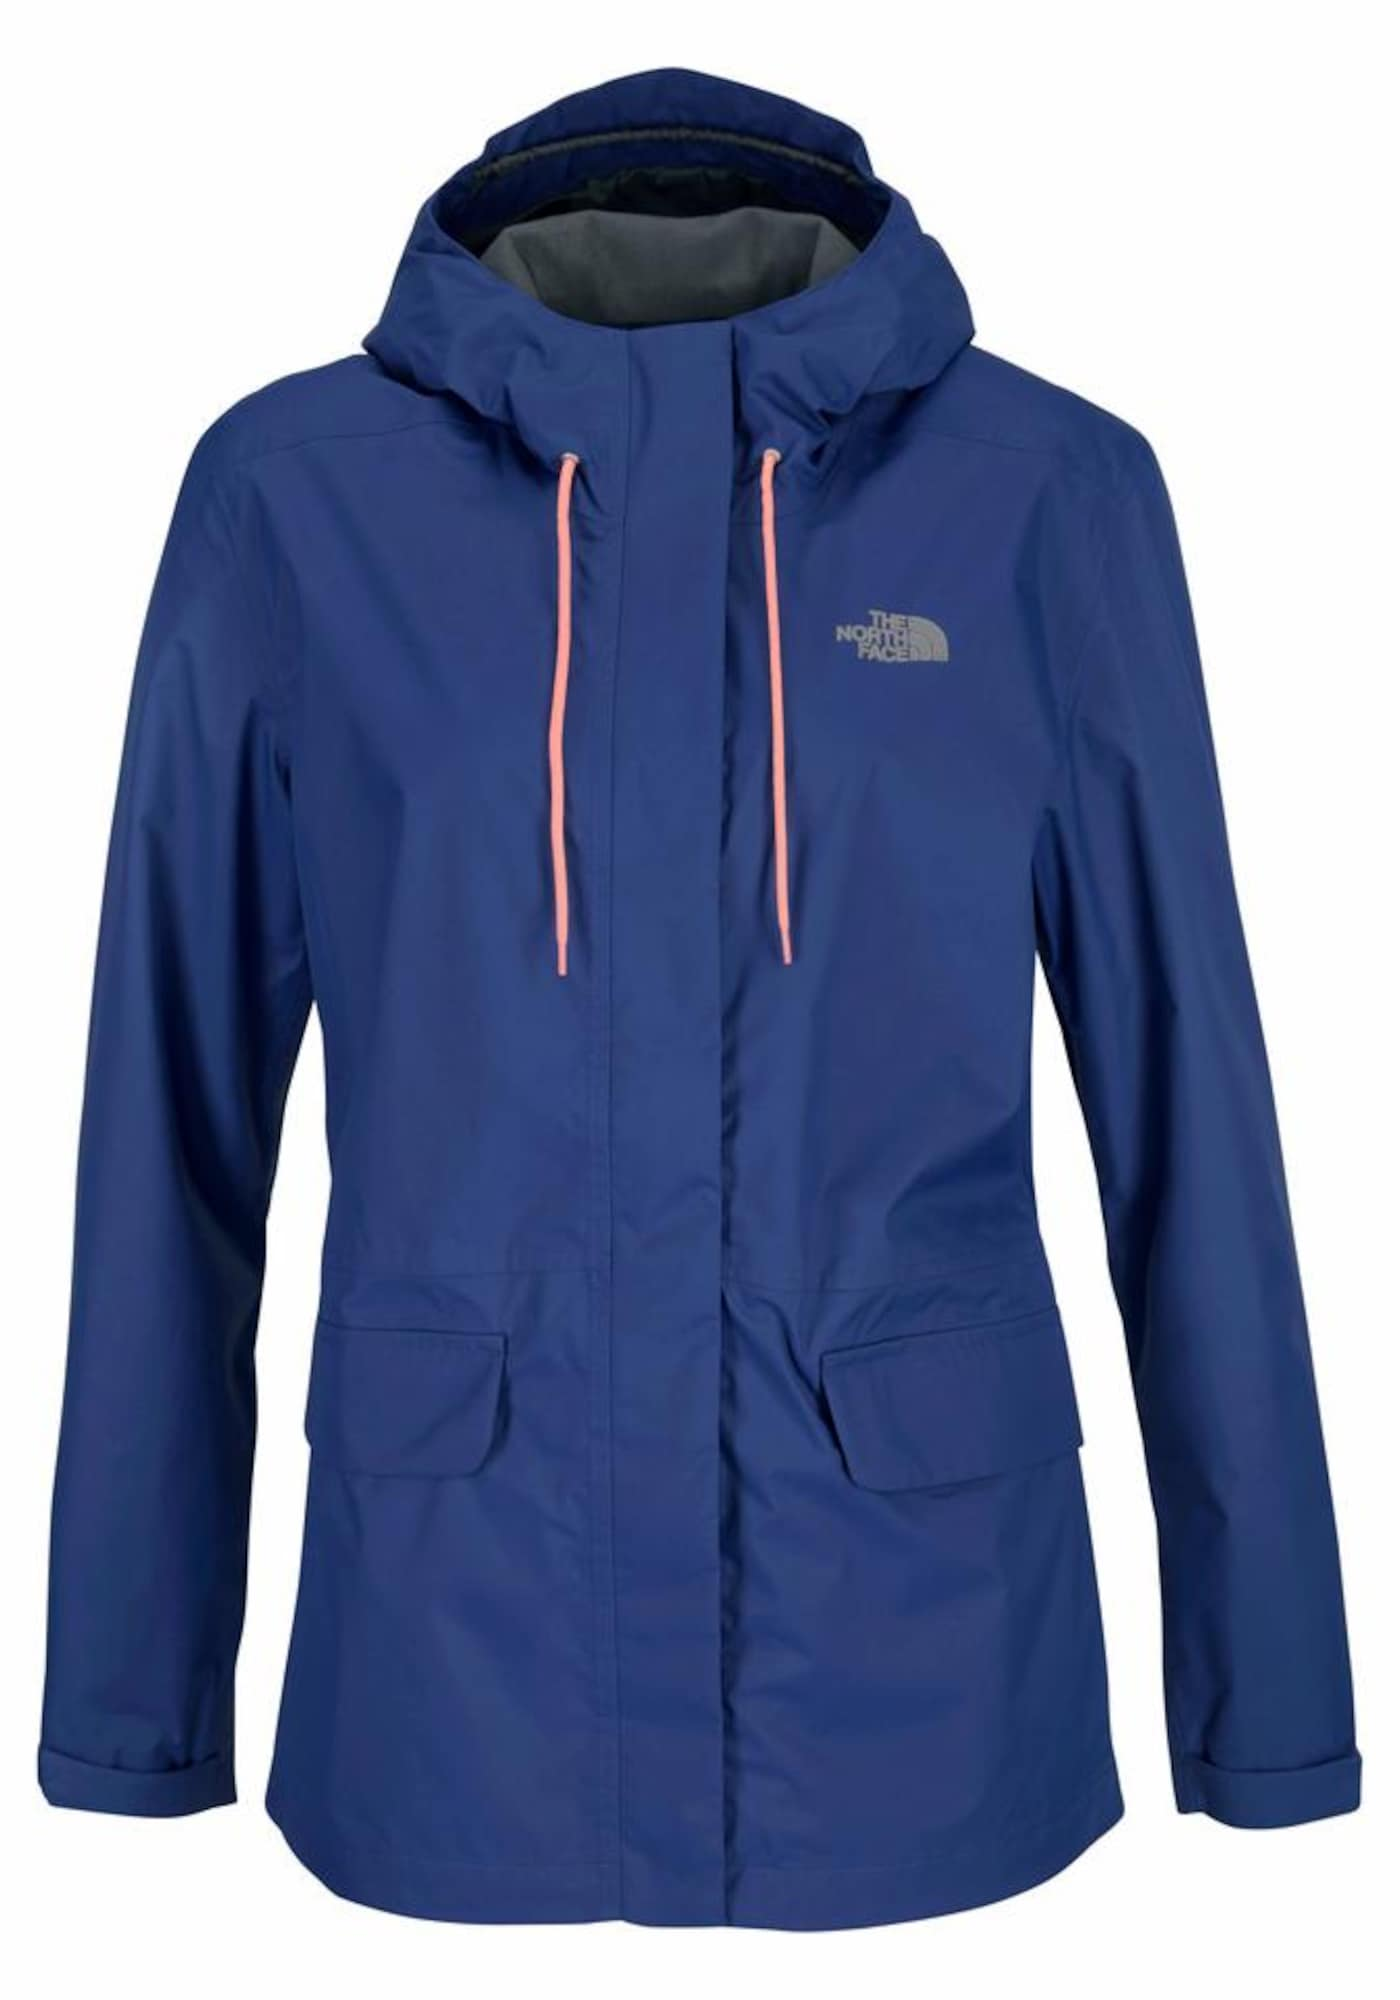 THE NORTH FACE Dames Functionele jas EXTENT SHELL JACKET blauw